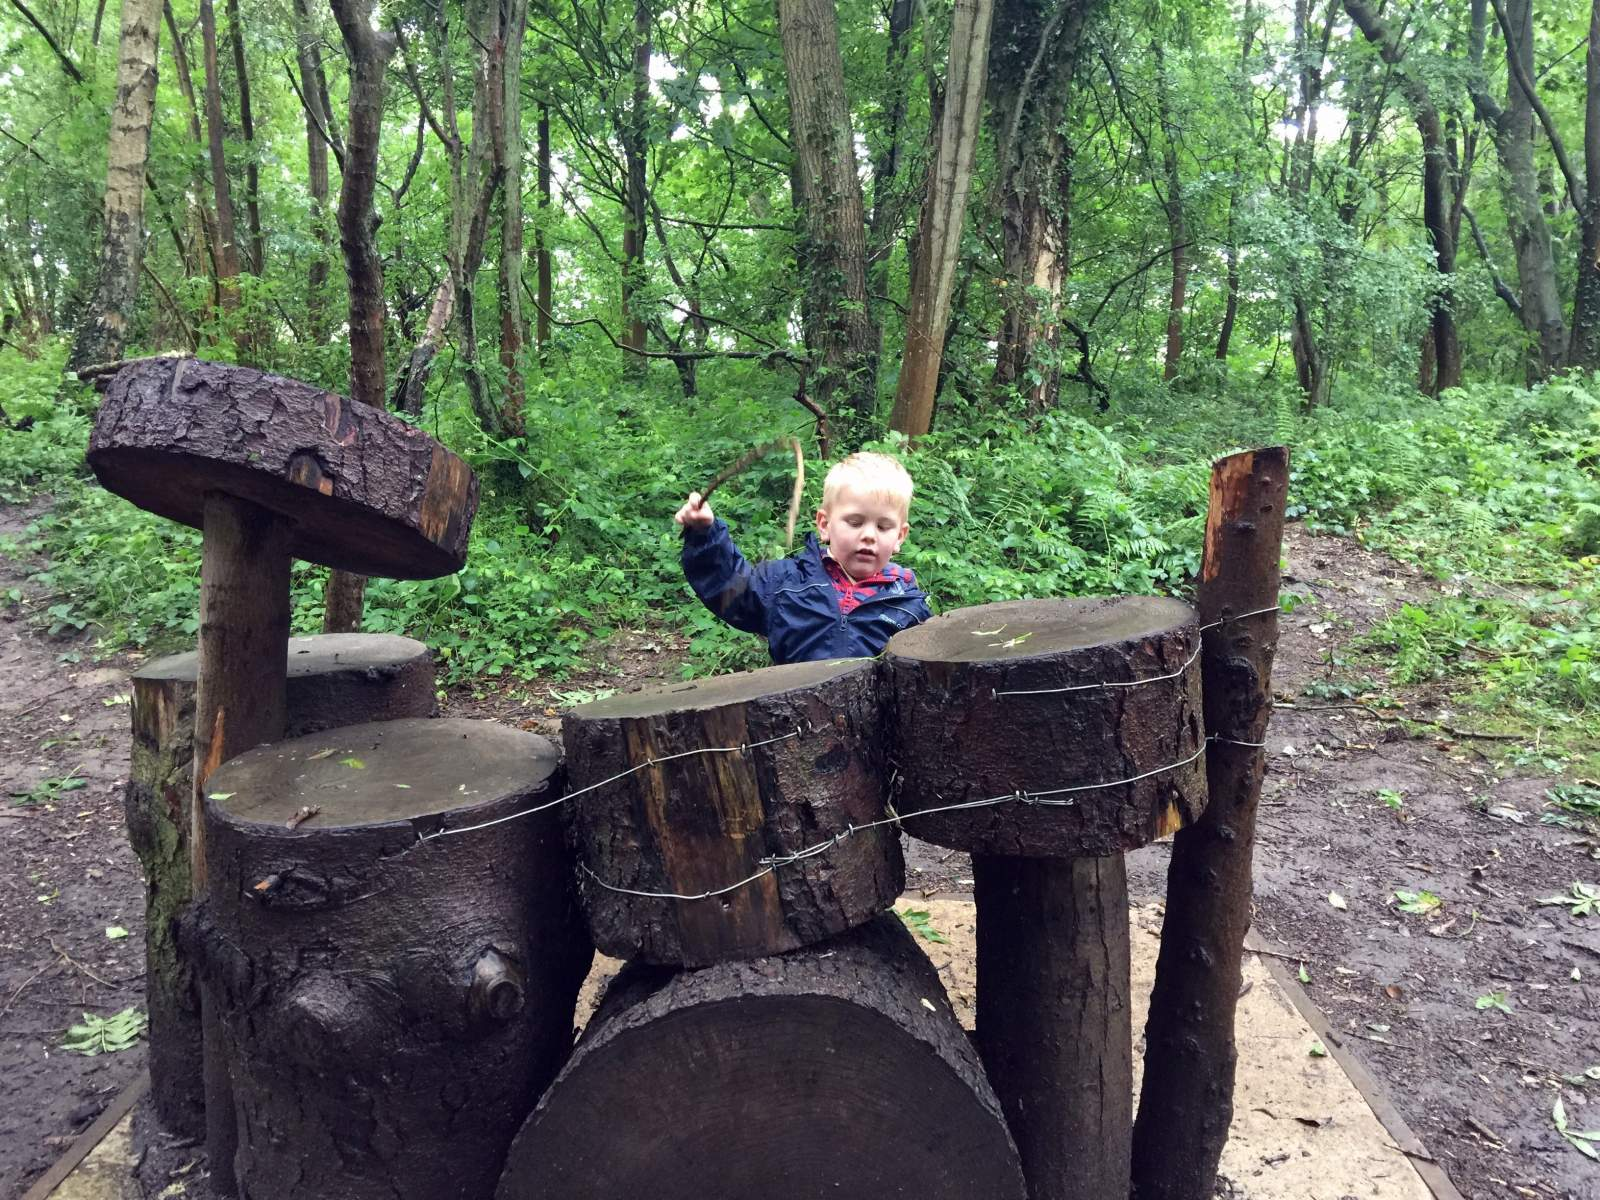 rainy day playing wooden drums at forest school in plessey woods